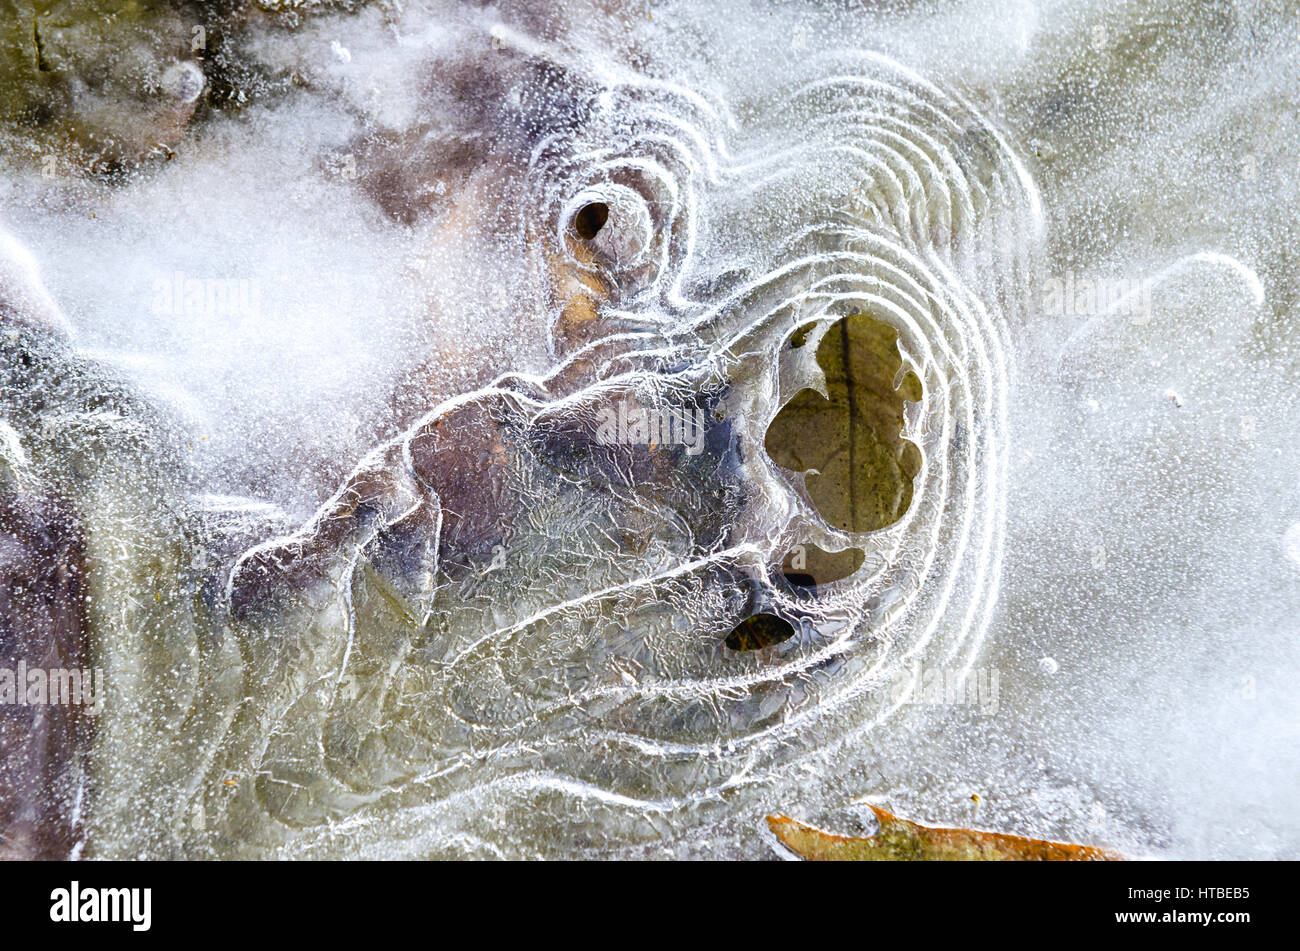 Winter ice frozen abstract patterns in nature. - Stock Image